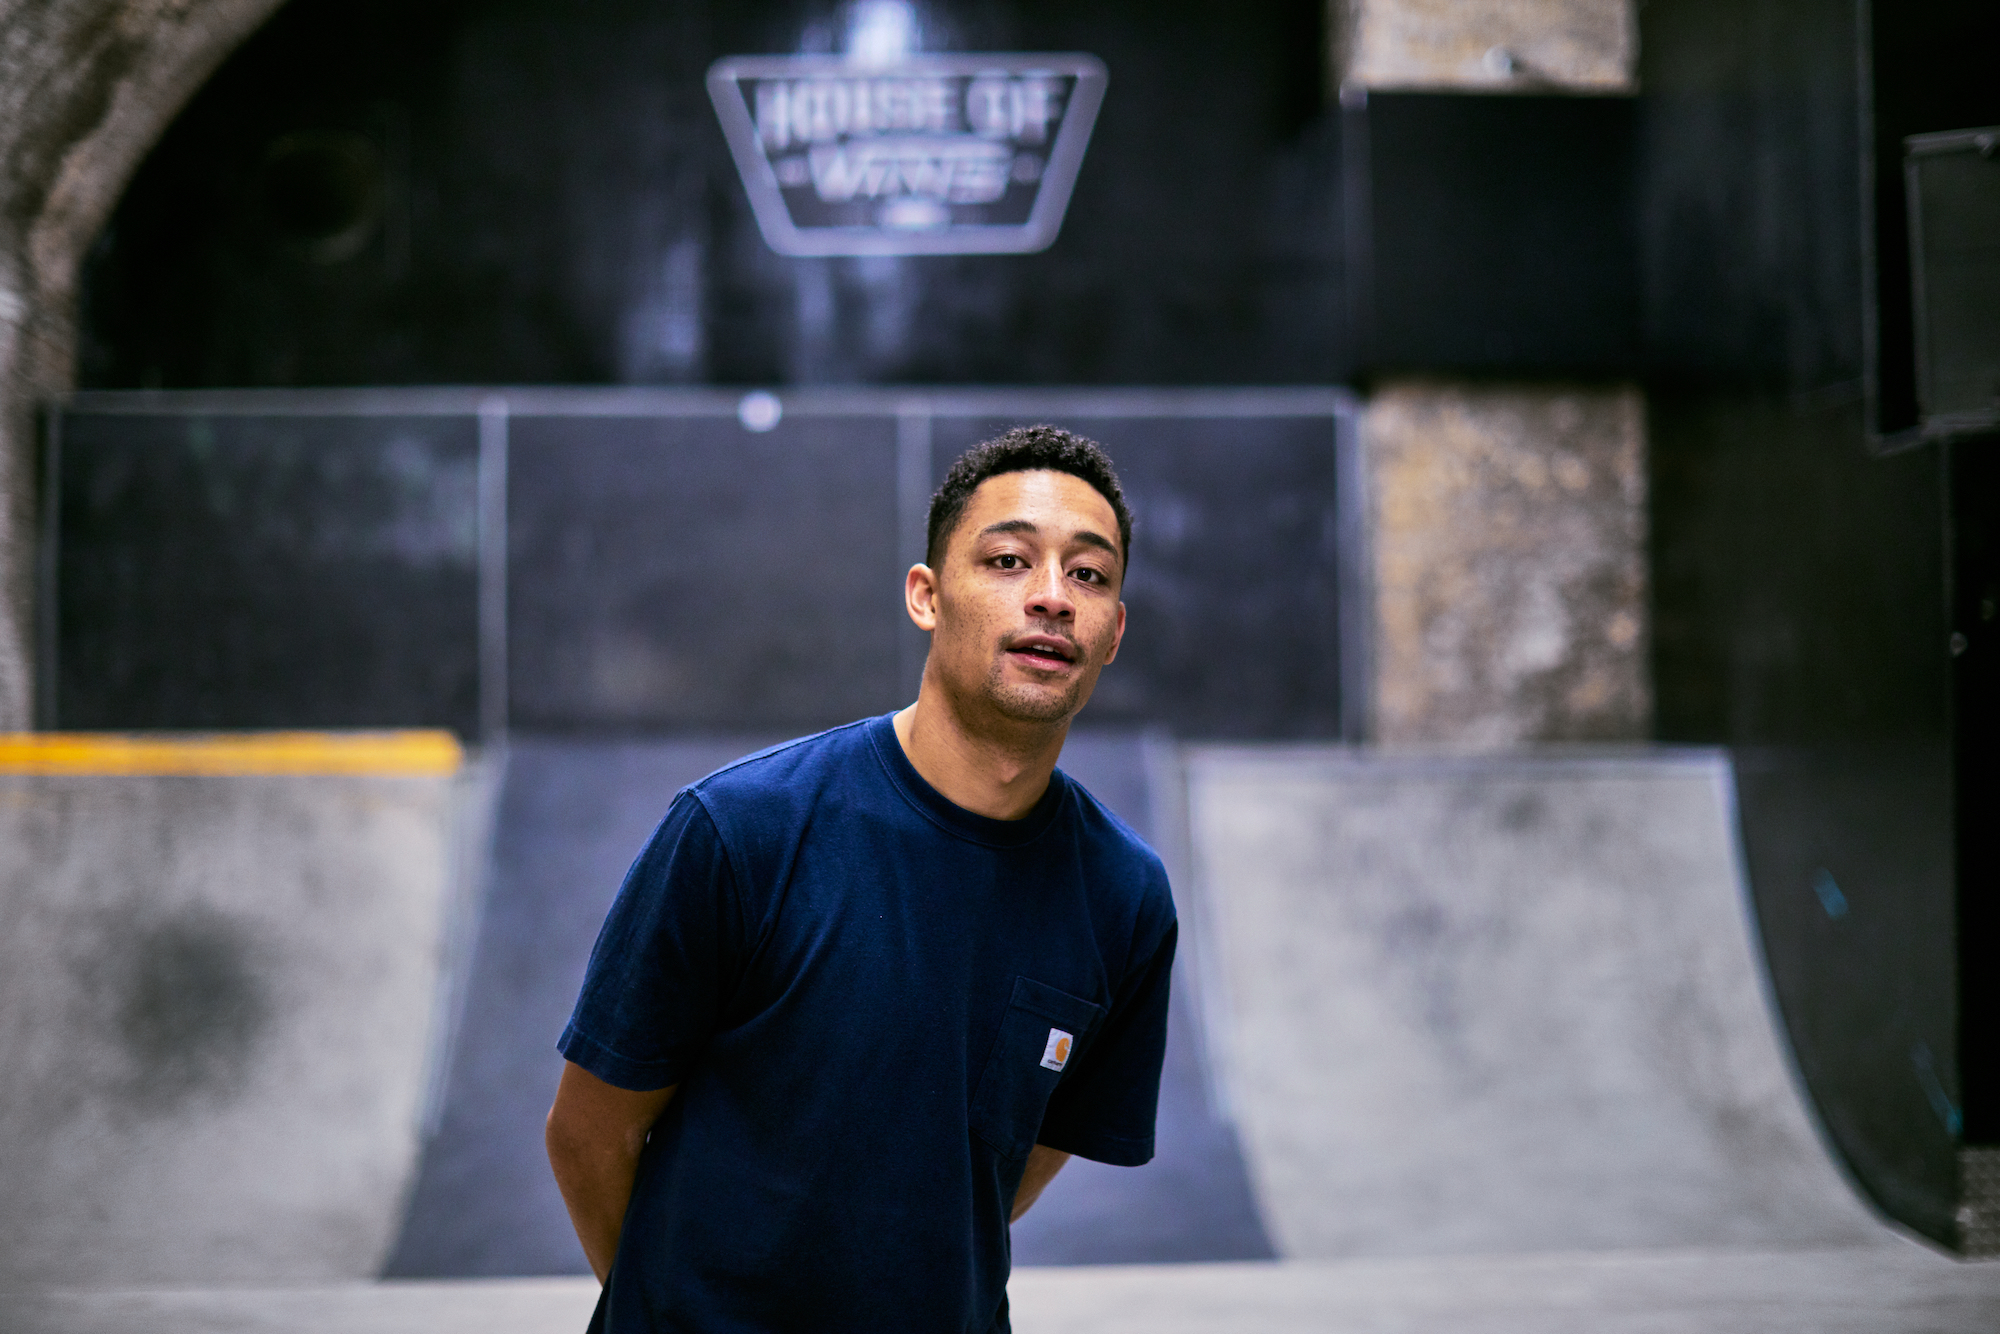 Loyle Carner for House of Vans